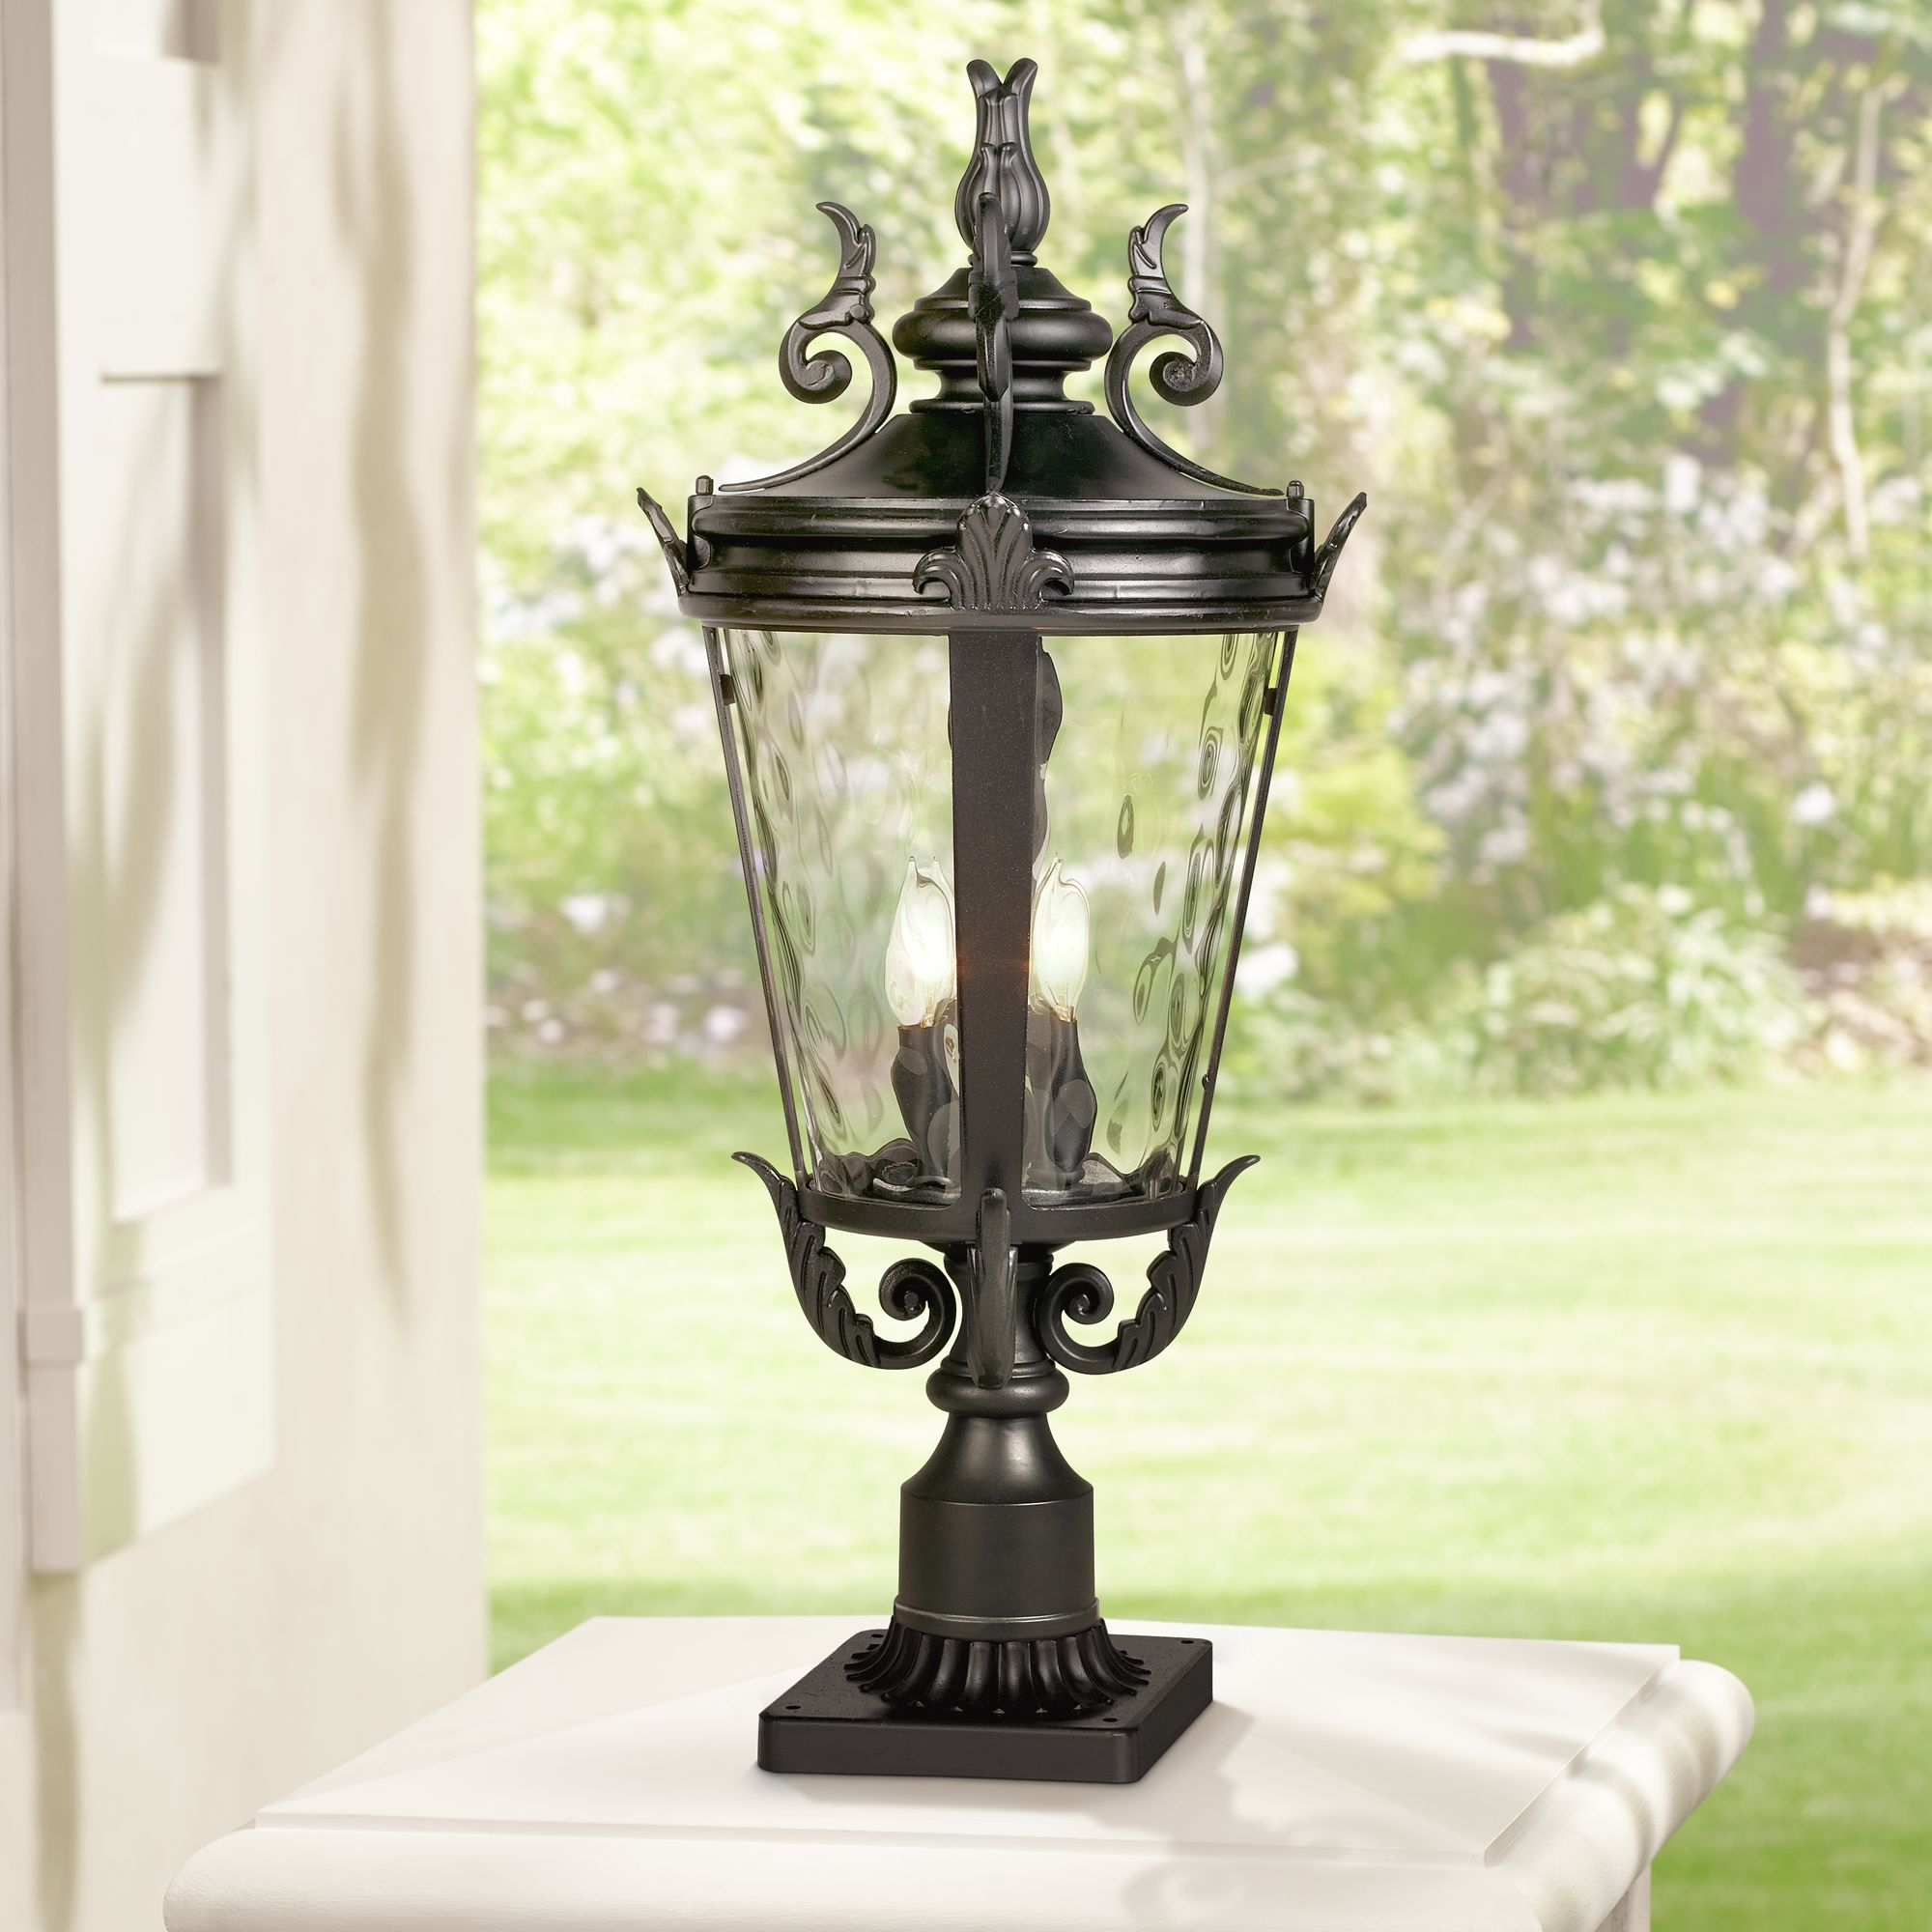 Popular Sheard Textured Black 2 – Bulb Wall Lanterns For John Timberland Traditional Outdoor Post Light With Pier (View 5 of 20)